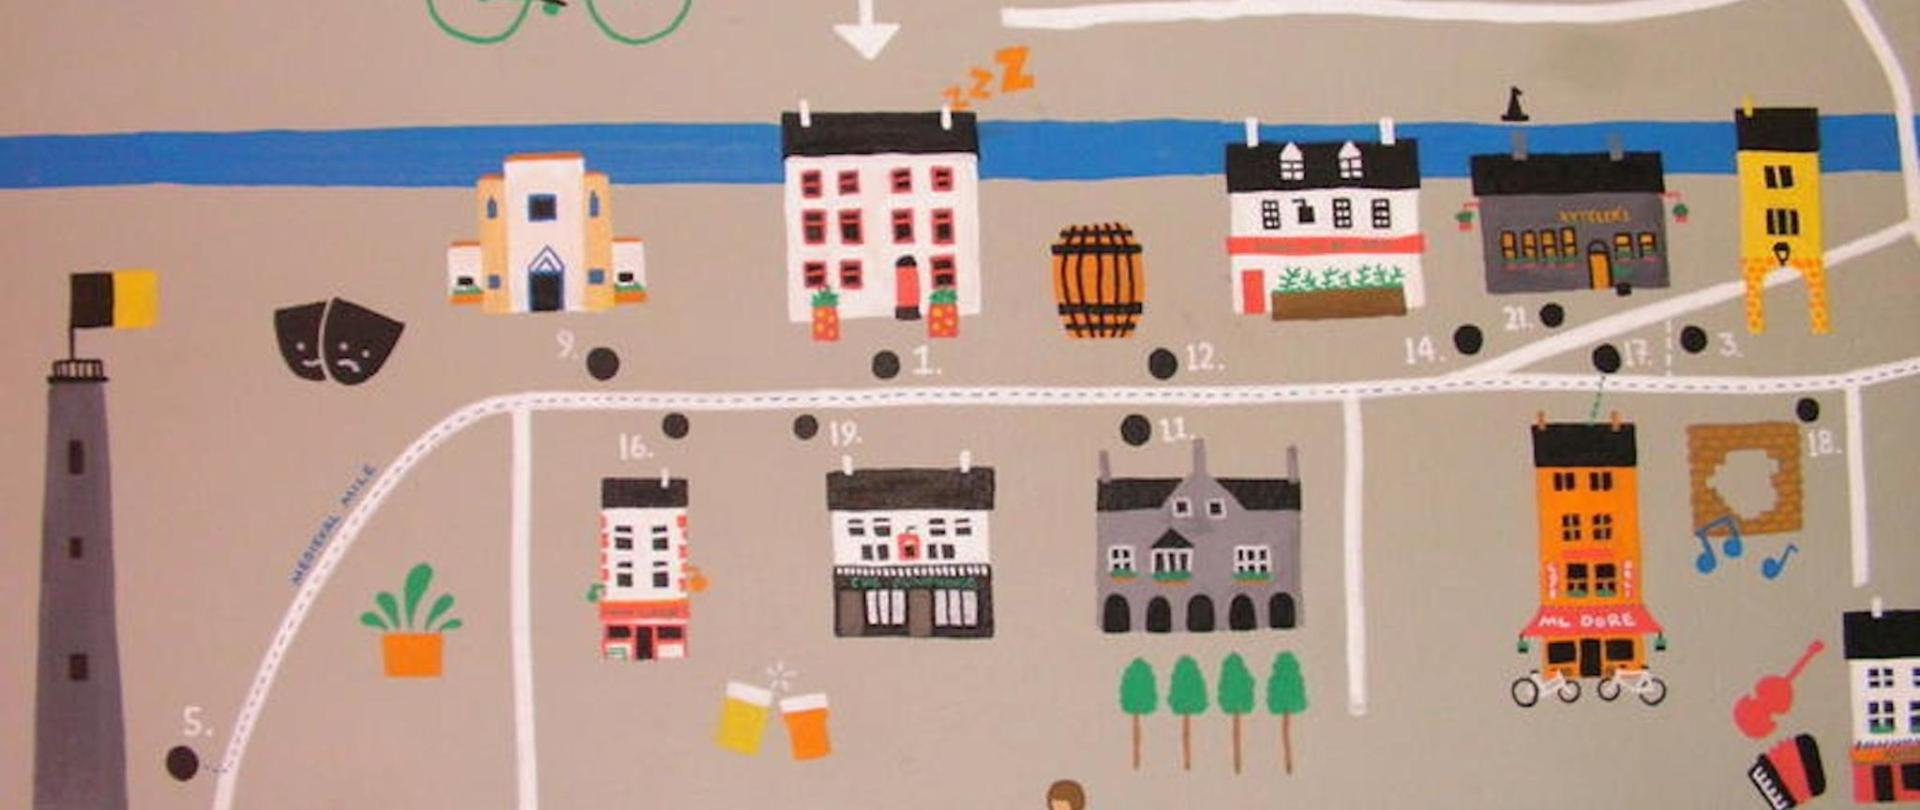 Kilkenny Tourist Hostel Mural at Reception